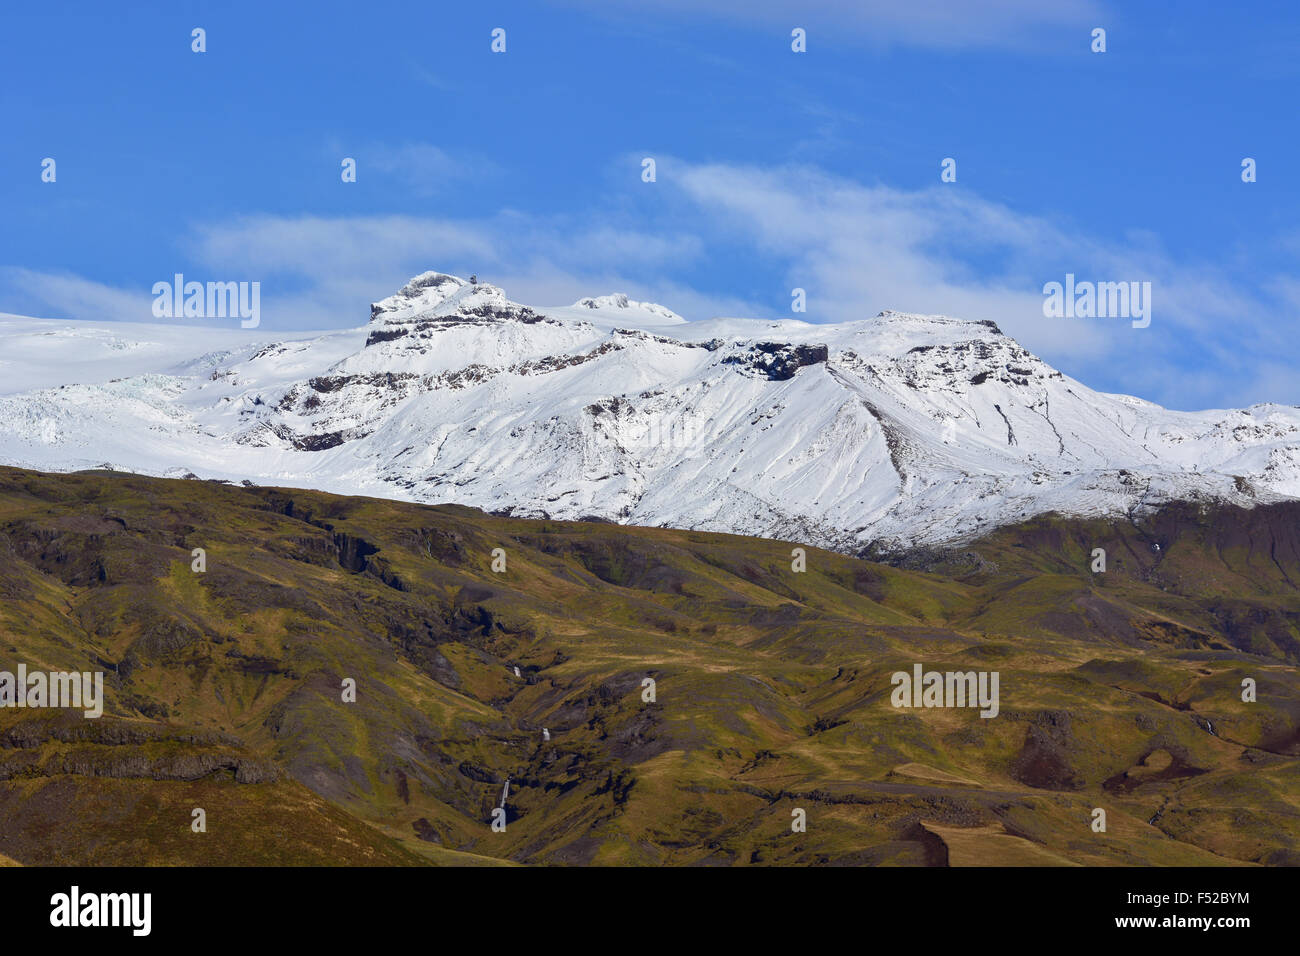 Eyjafjallajökull volcano in South Iceland - Stock Image